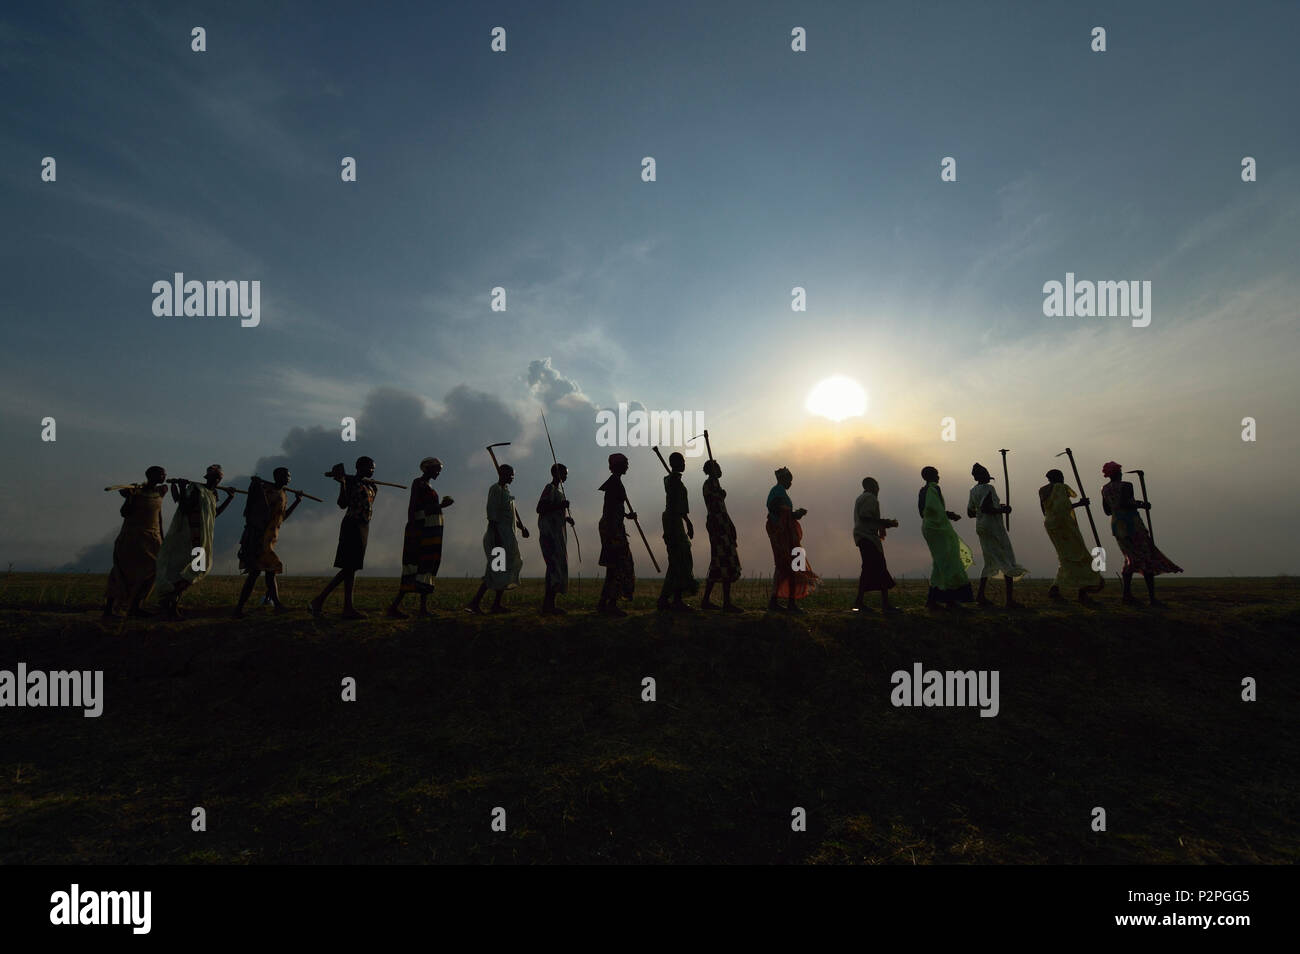 After working together in a community garden, women sing and dance as they walk home in Dong Boma, South Sudan, atop a dyke they constructed. - Stock Image